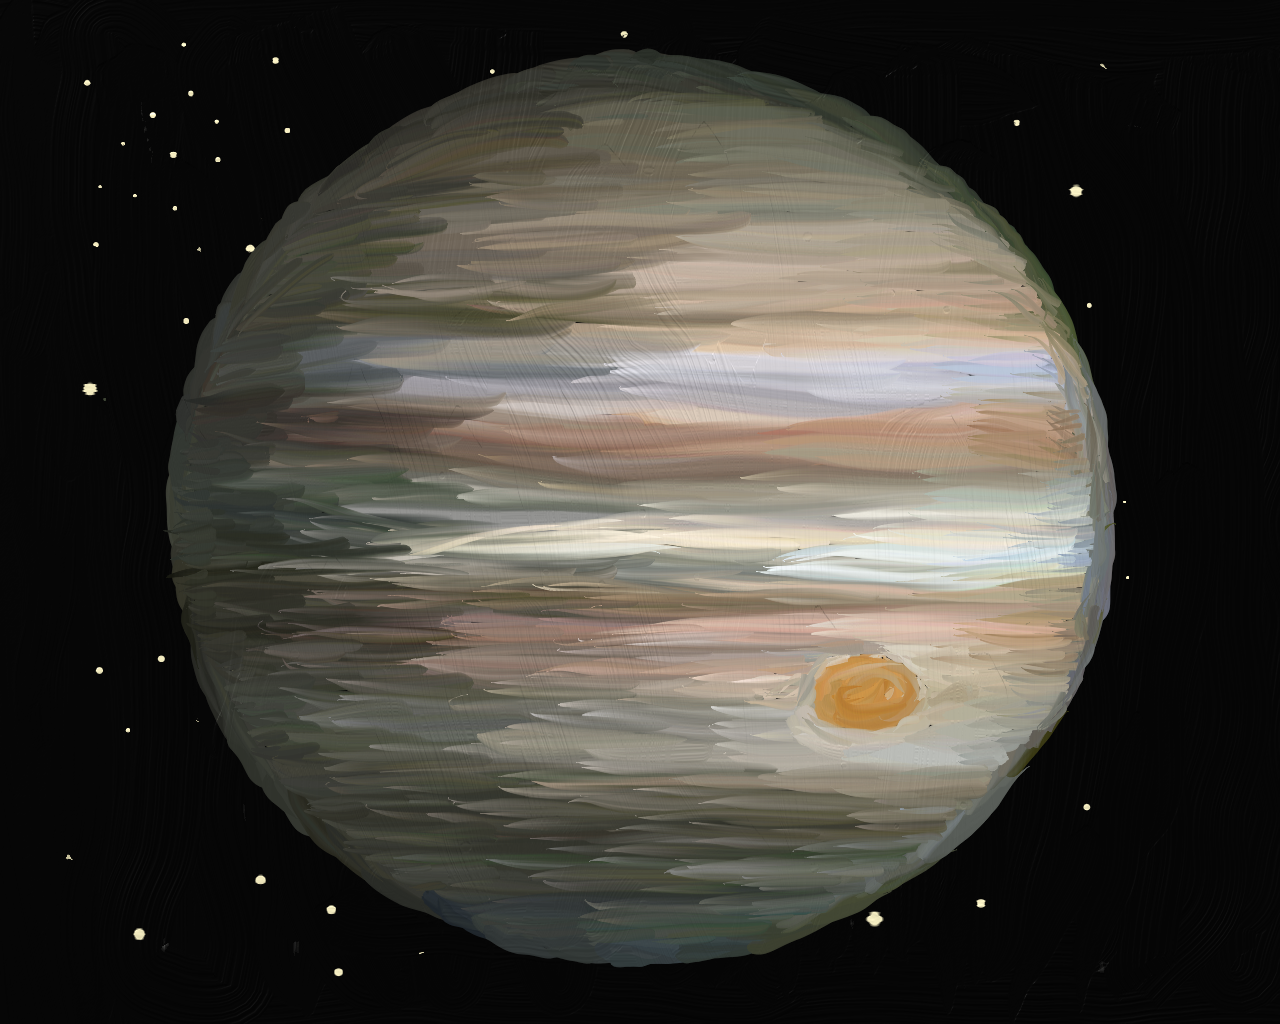 Jupiter, an oil painting